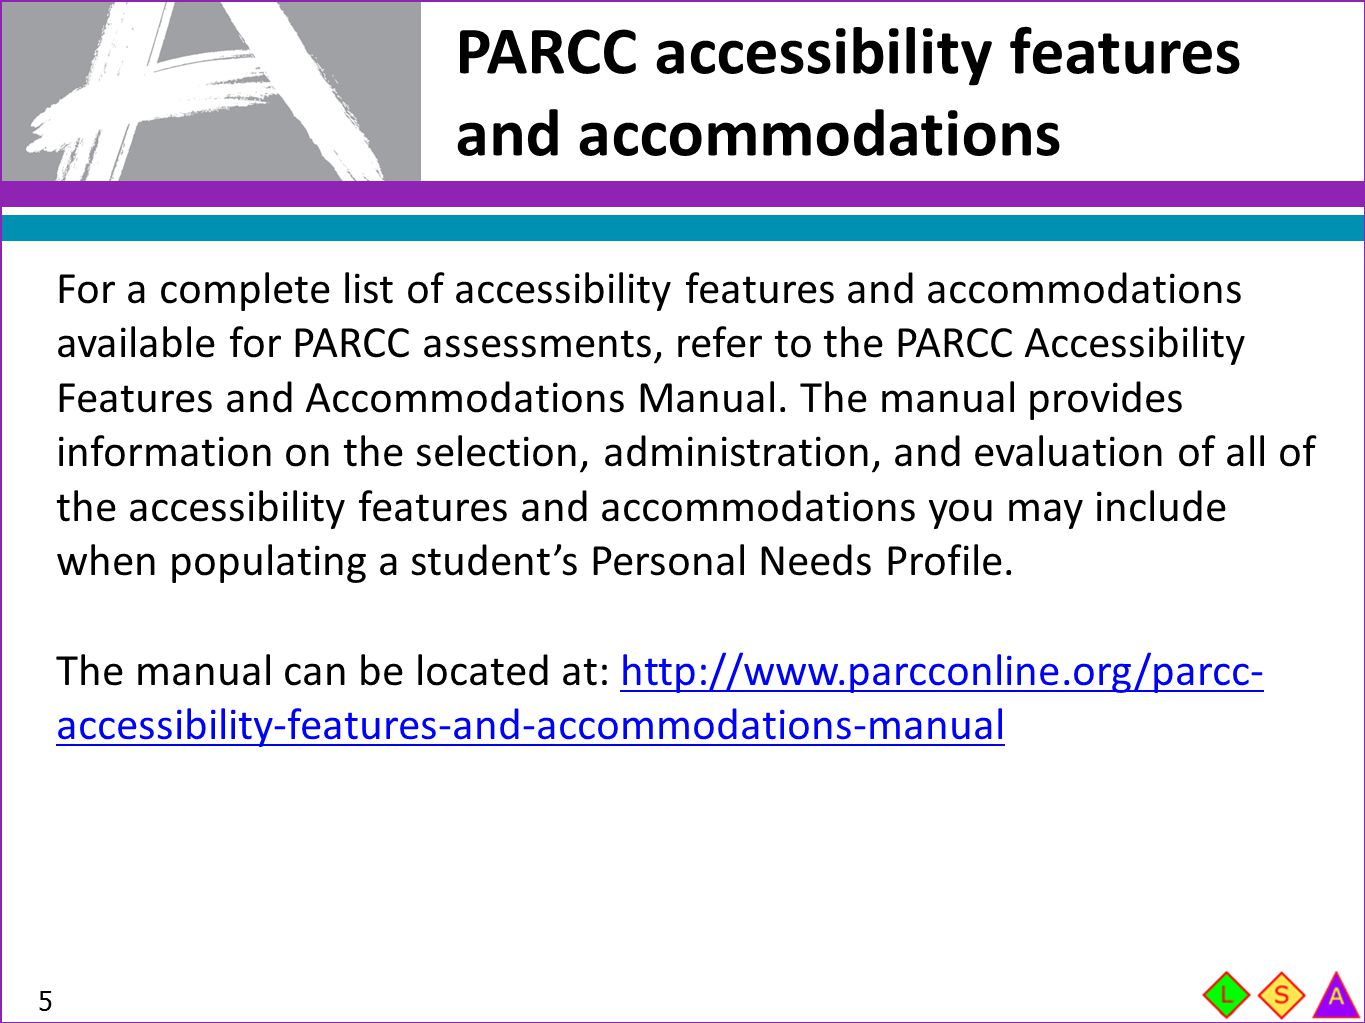 PARCC accessibility features and accommodations